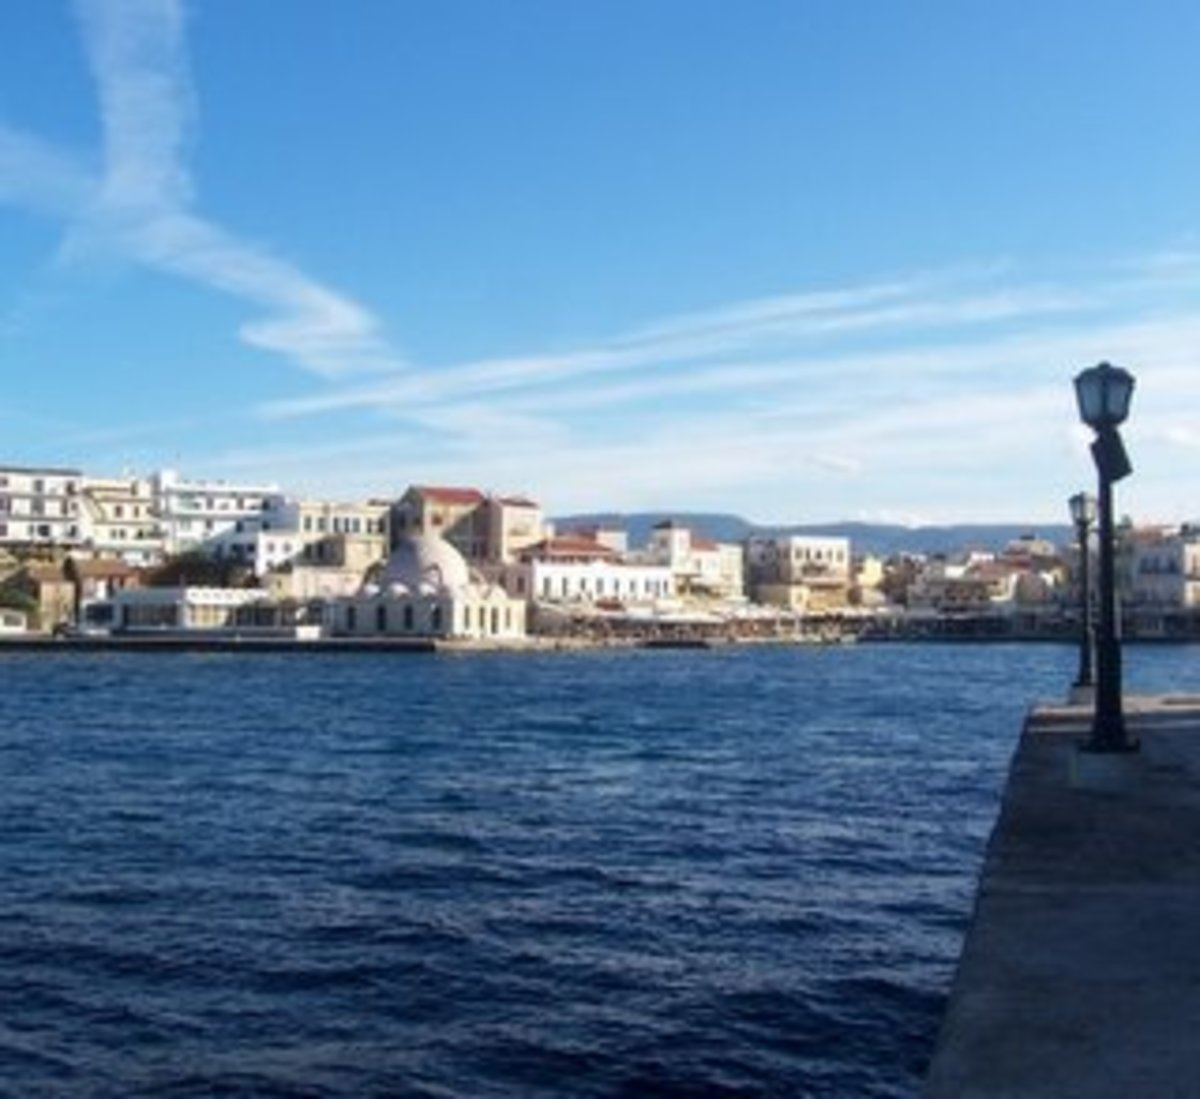 Chania Old Harbour, Crete, Greece